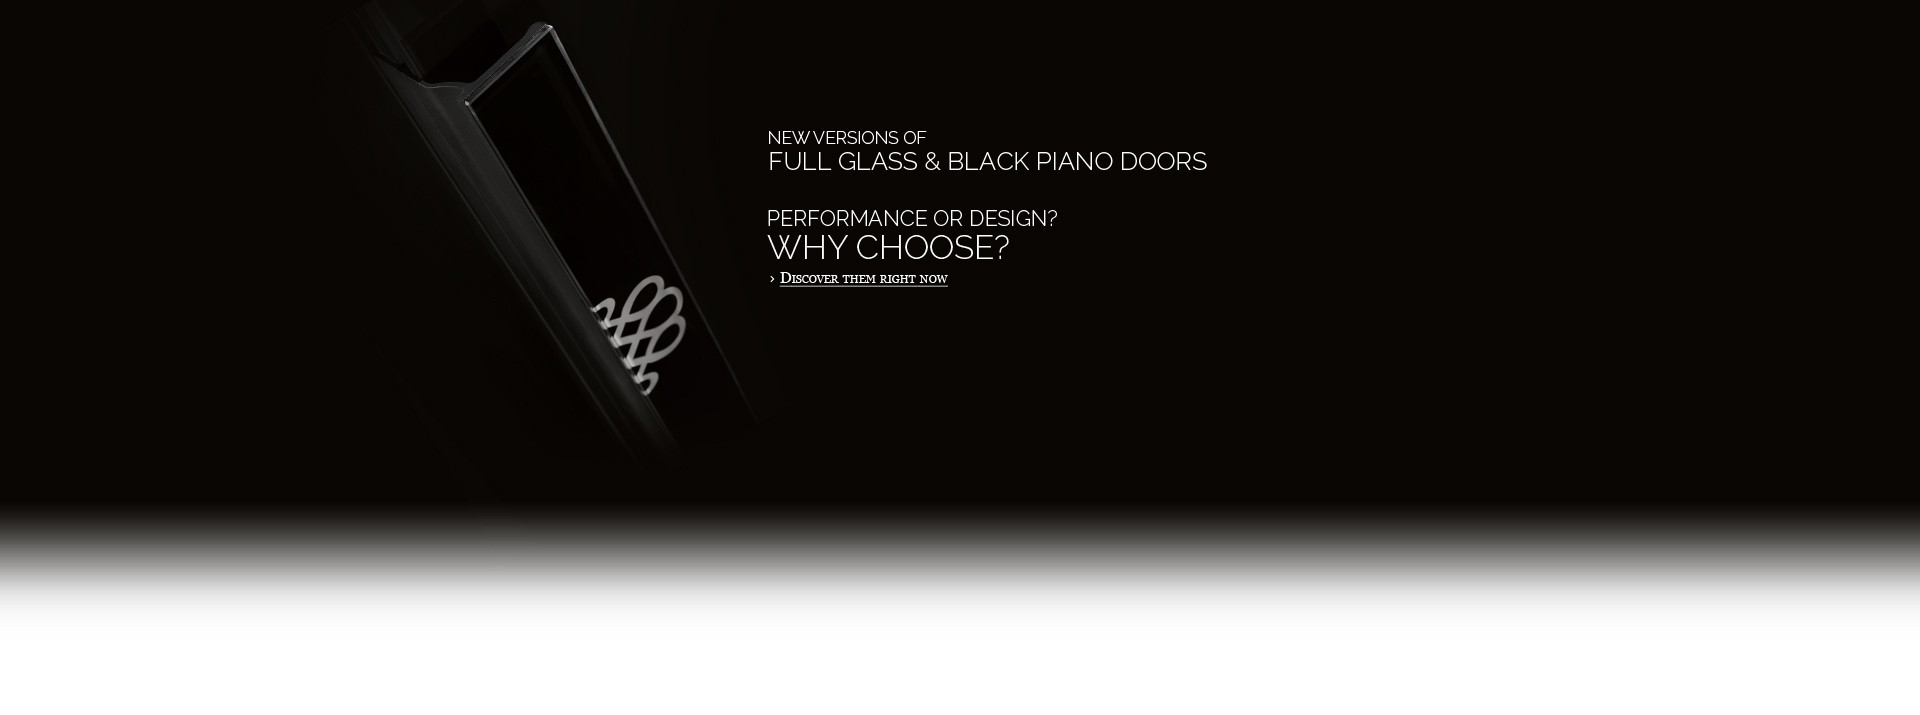 New versions of Full Glass & Black Piano doors.